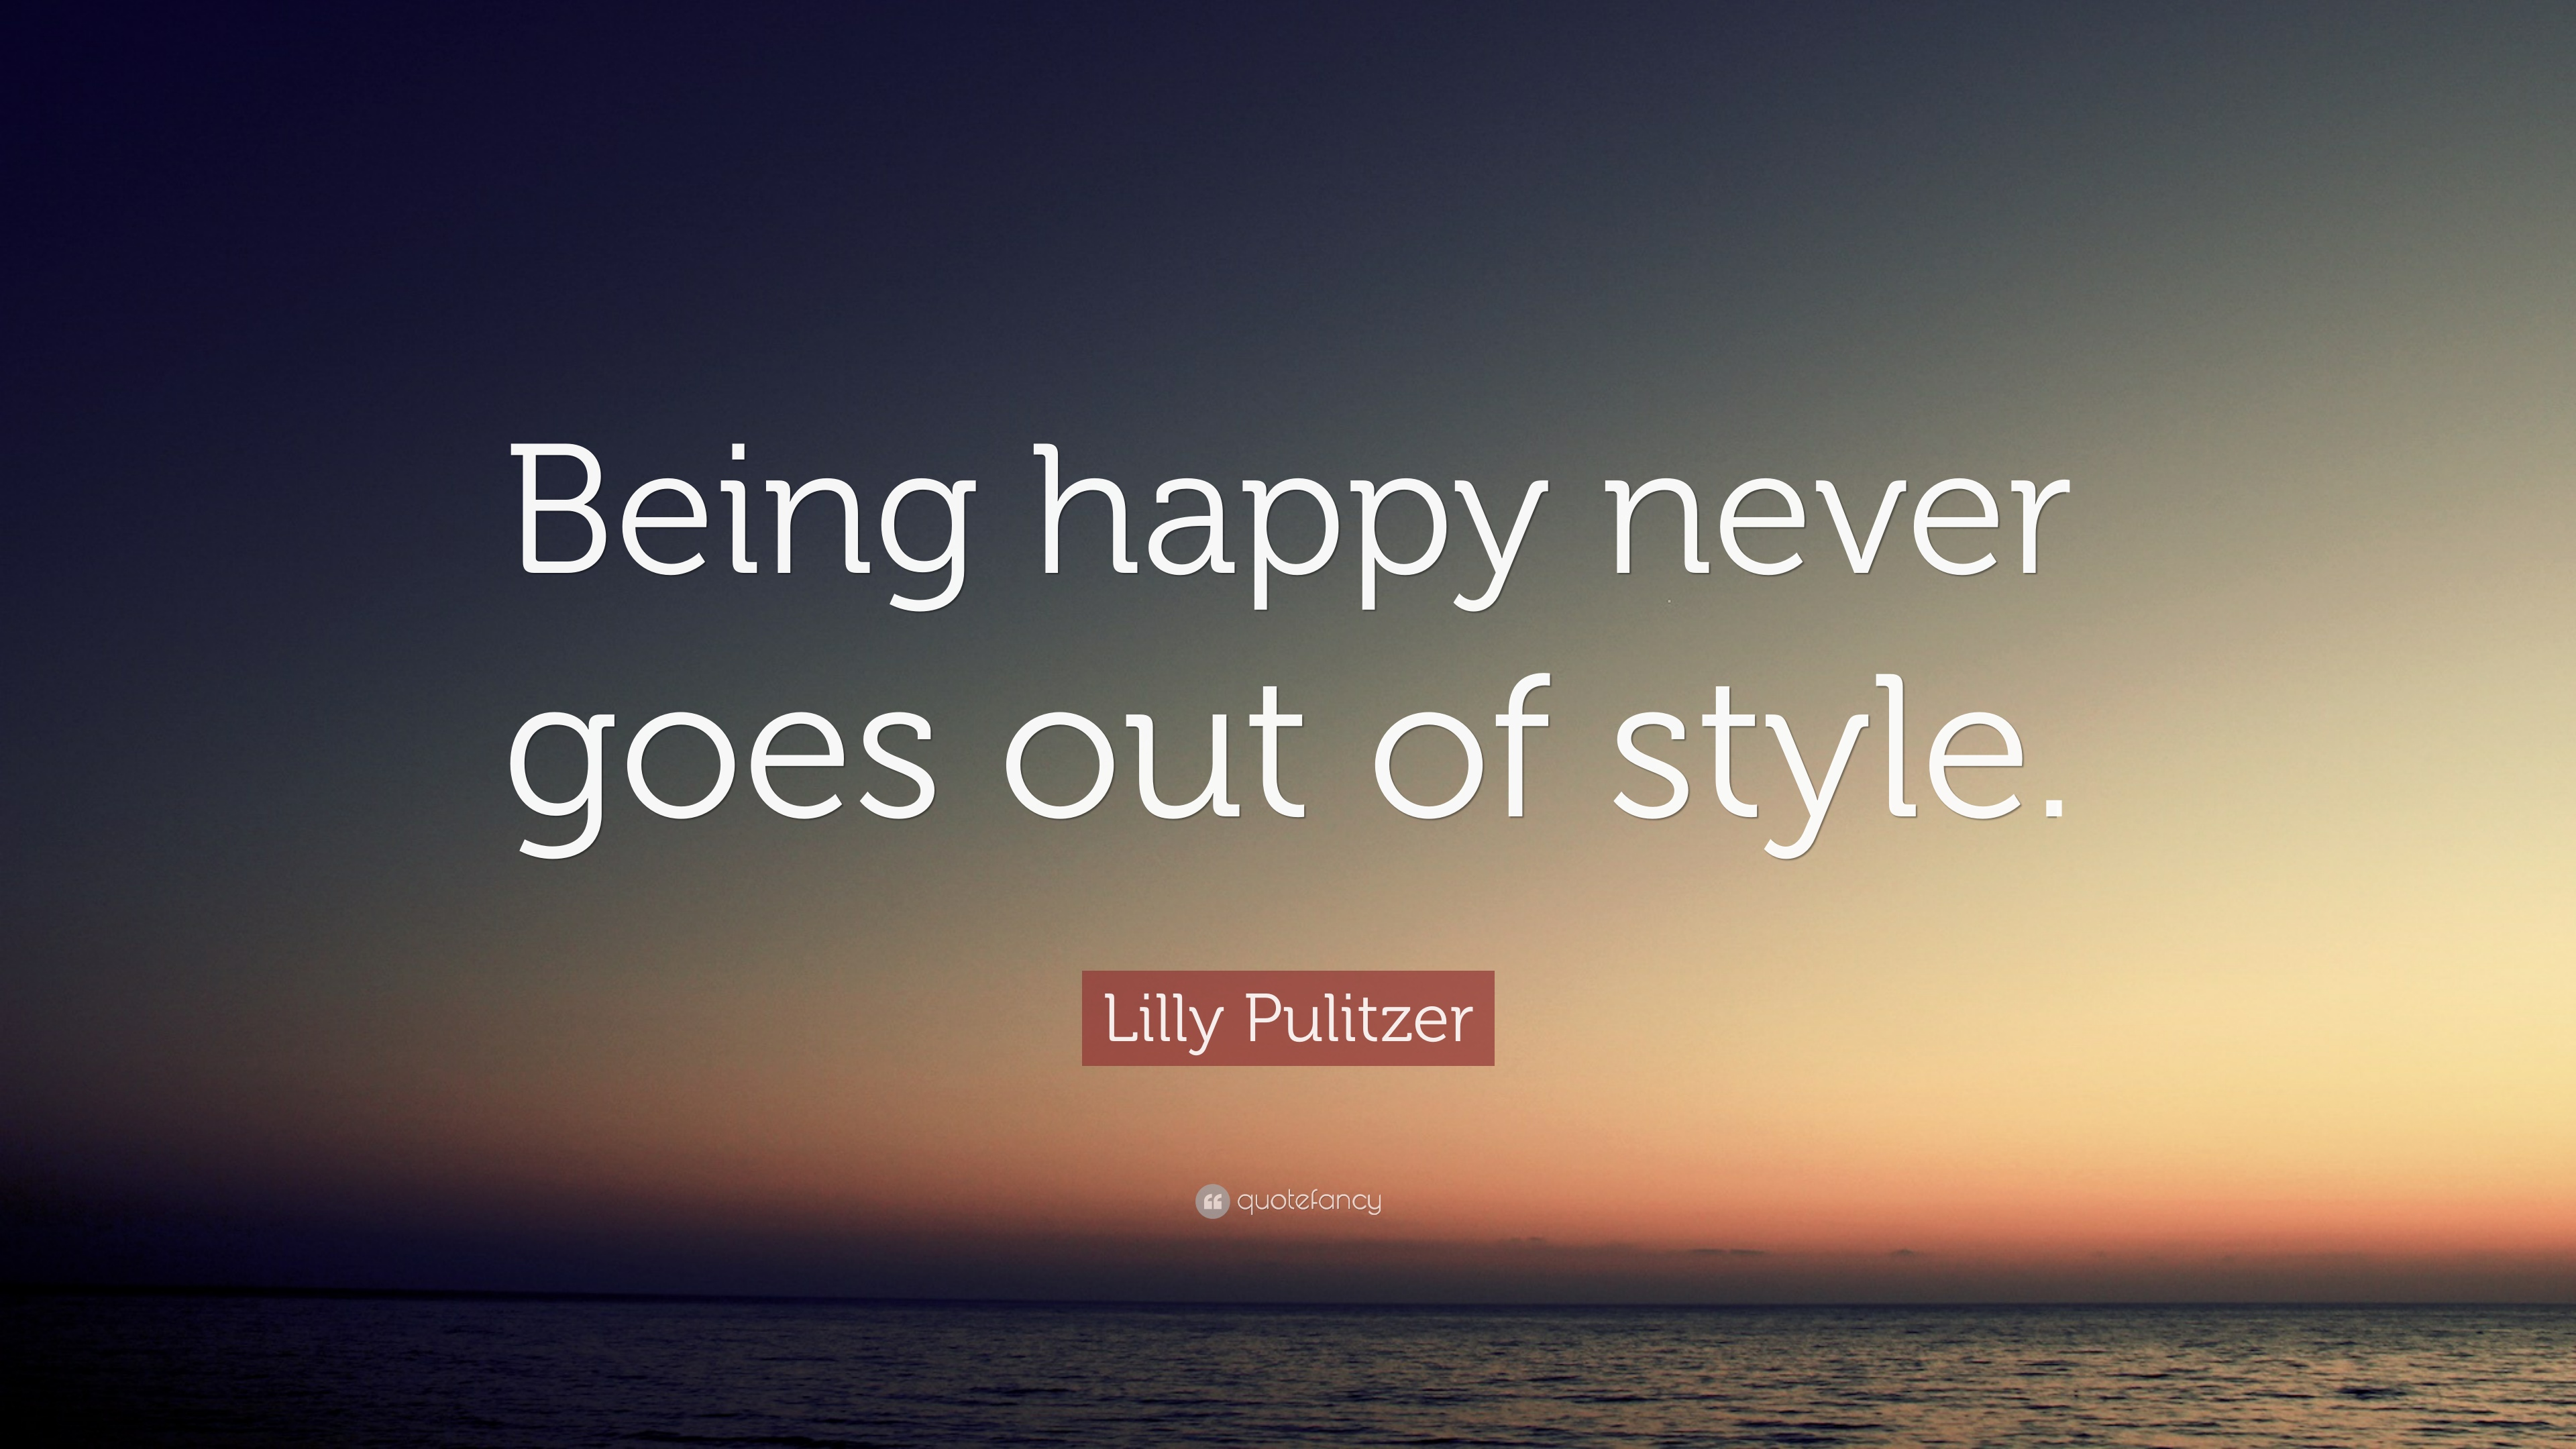 Quotes About Being Happy Being Happy Quotes 40 Wallpapers  Quotefancy